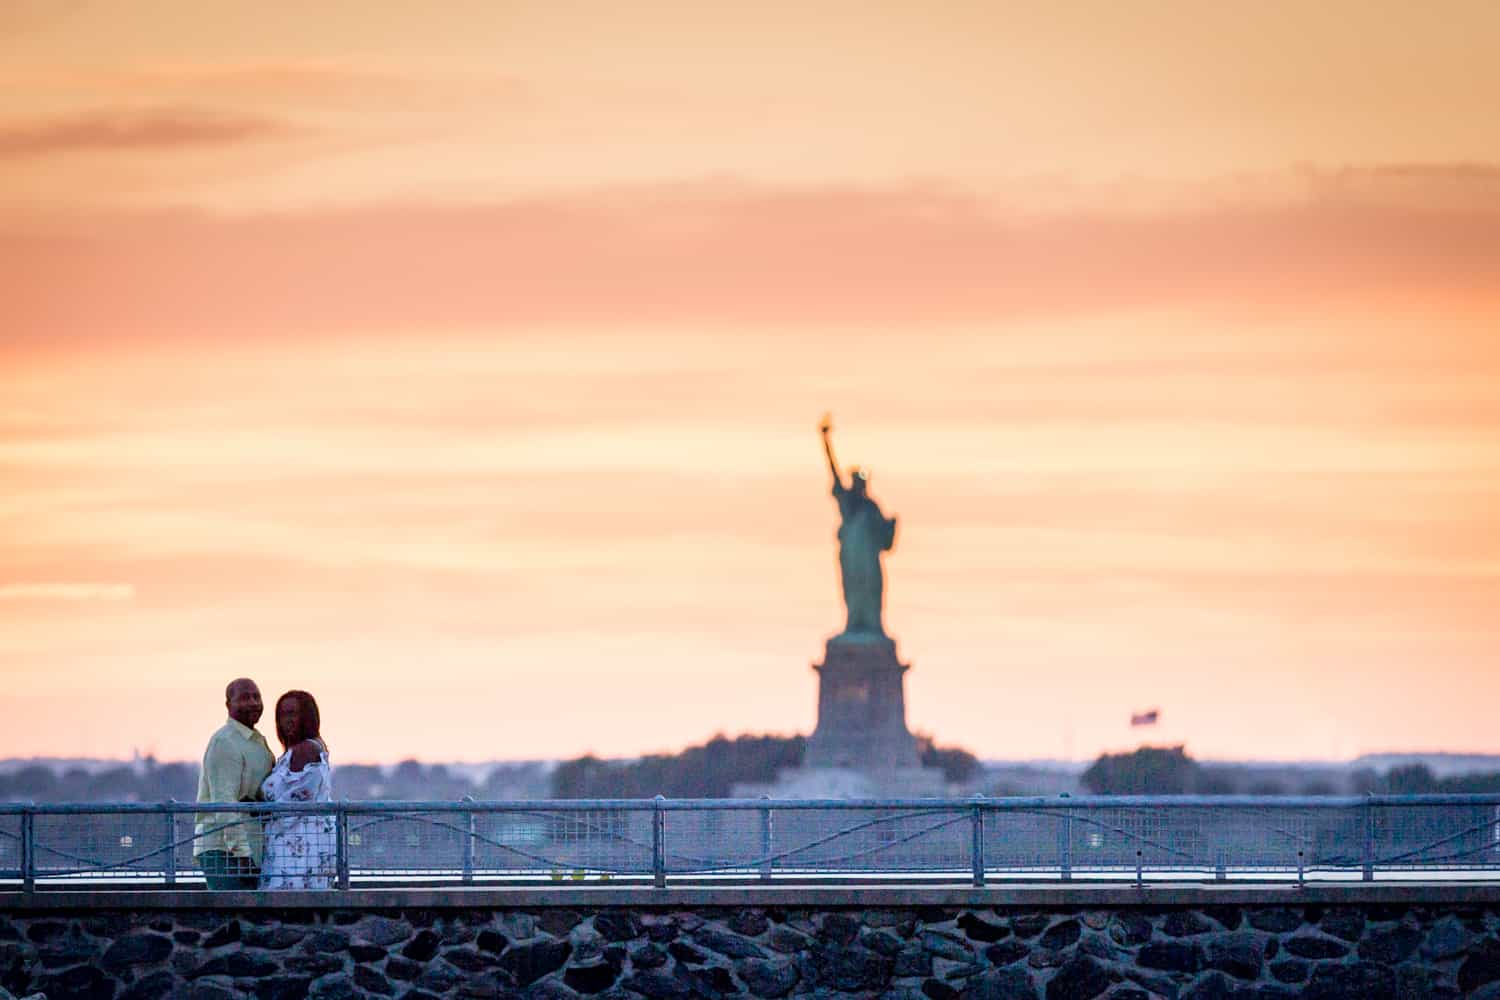 Couple on dock with Statue of Liberty in background at sunset